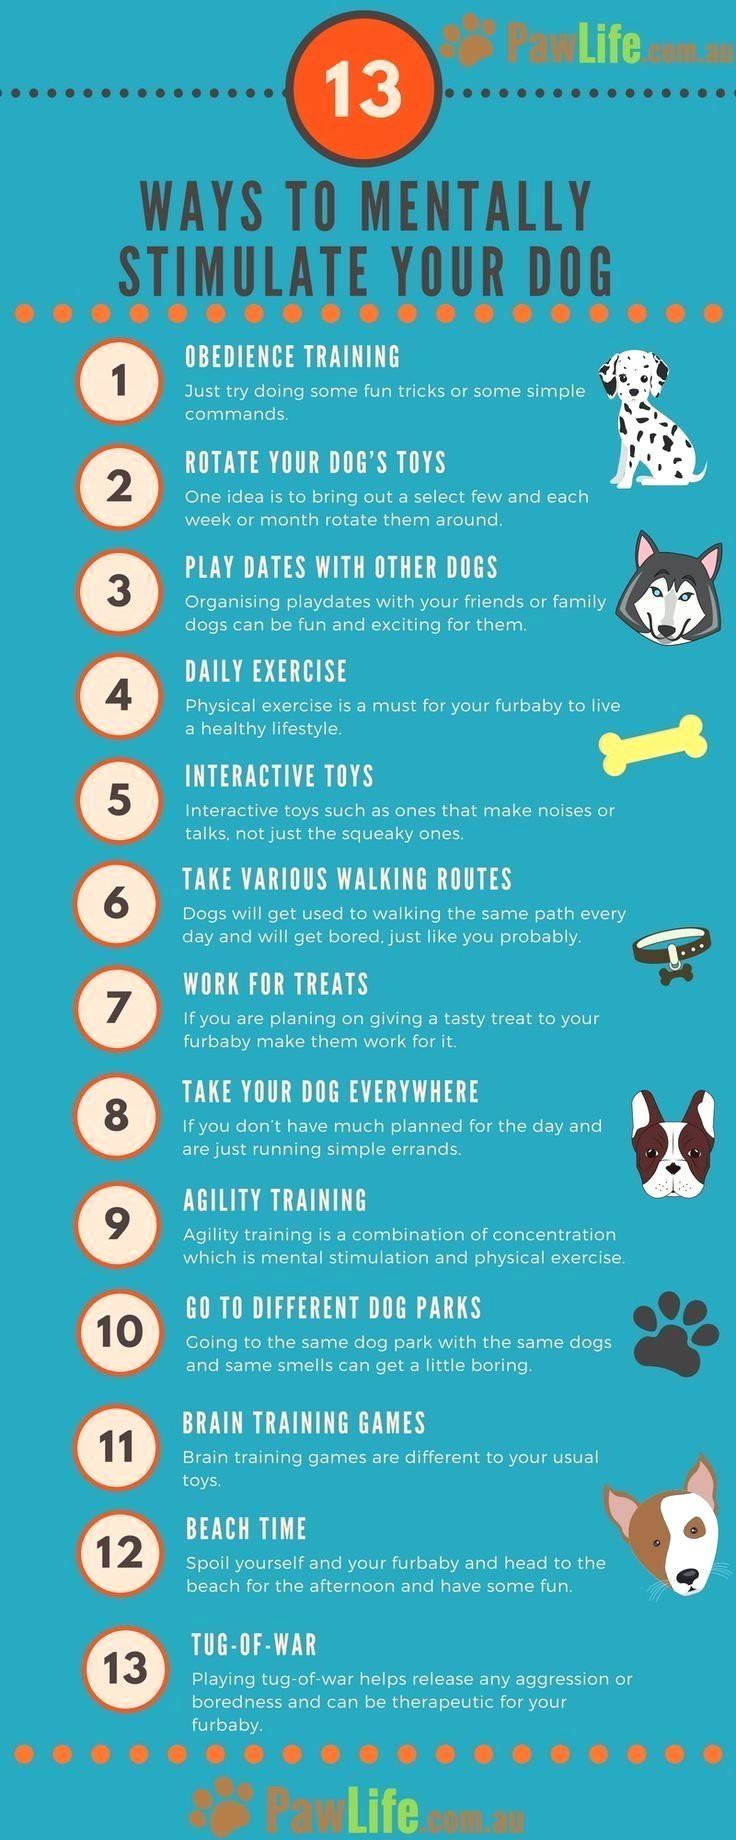 More Dog Training Click Pic For Many Dog Care Click Pin For Various Dog Training Ideas Dogtraining Dog Training Obedience Dog Care Tips Dog Training